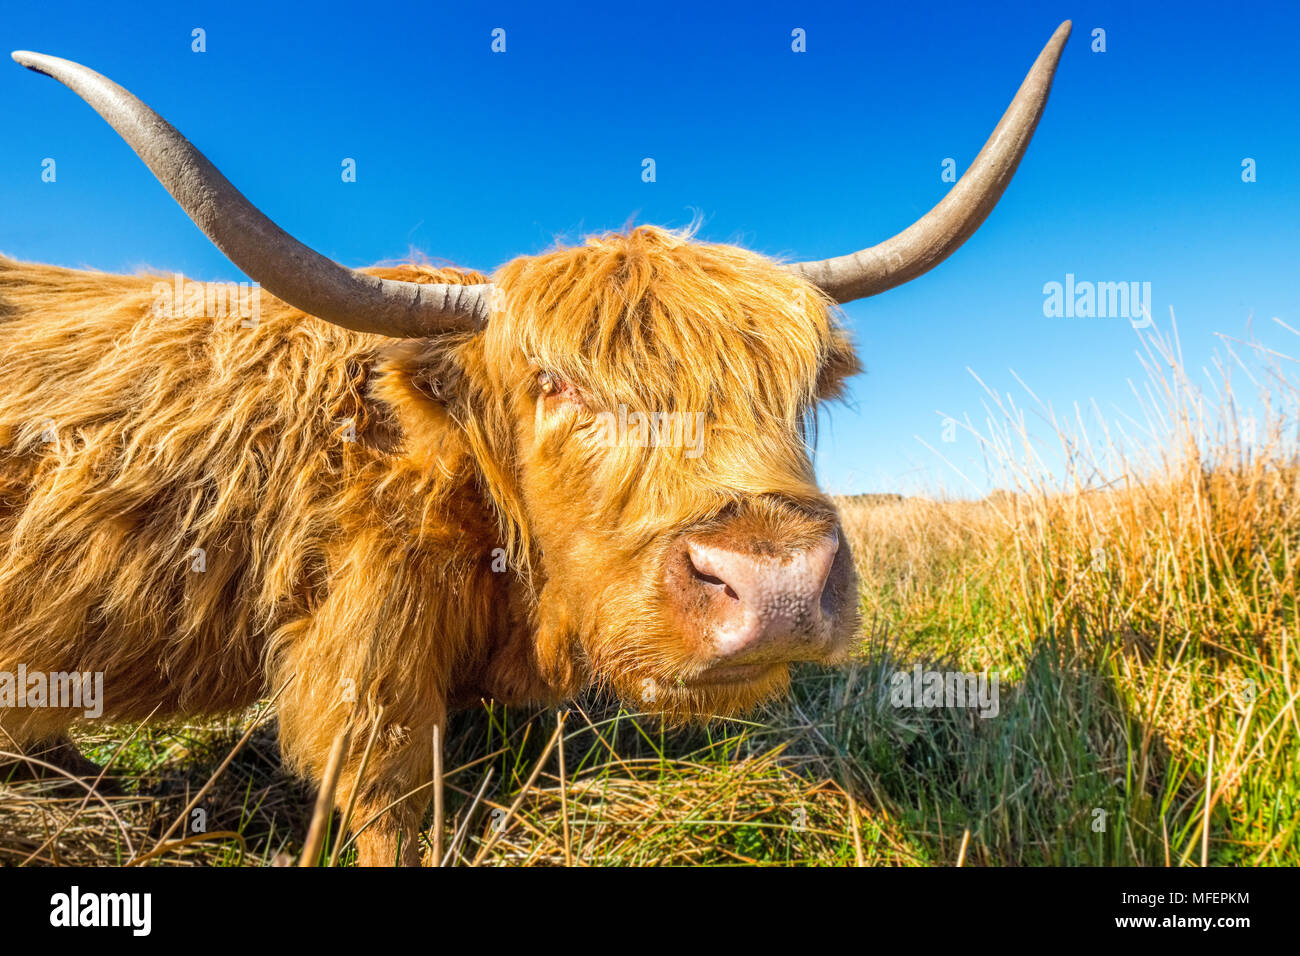 Highland cow / cattle grazing on moorland - Stock Image